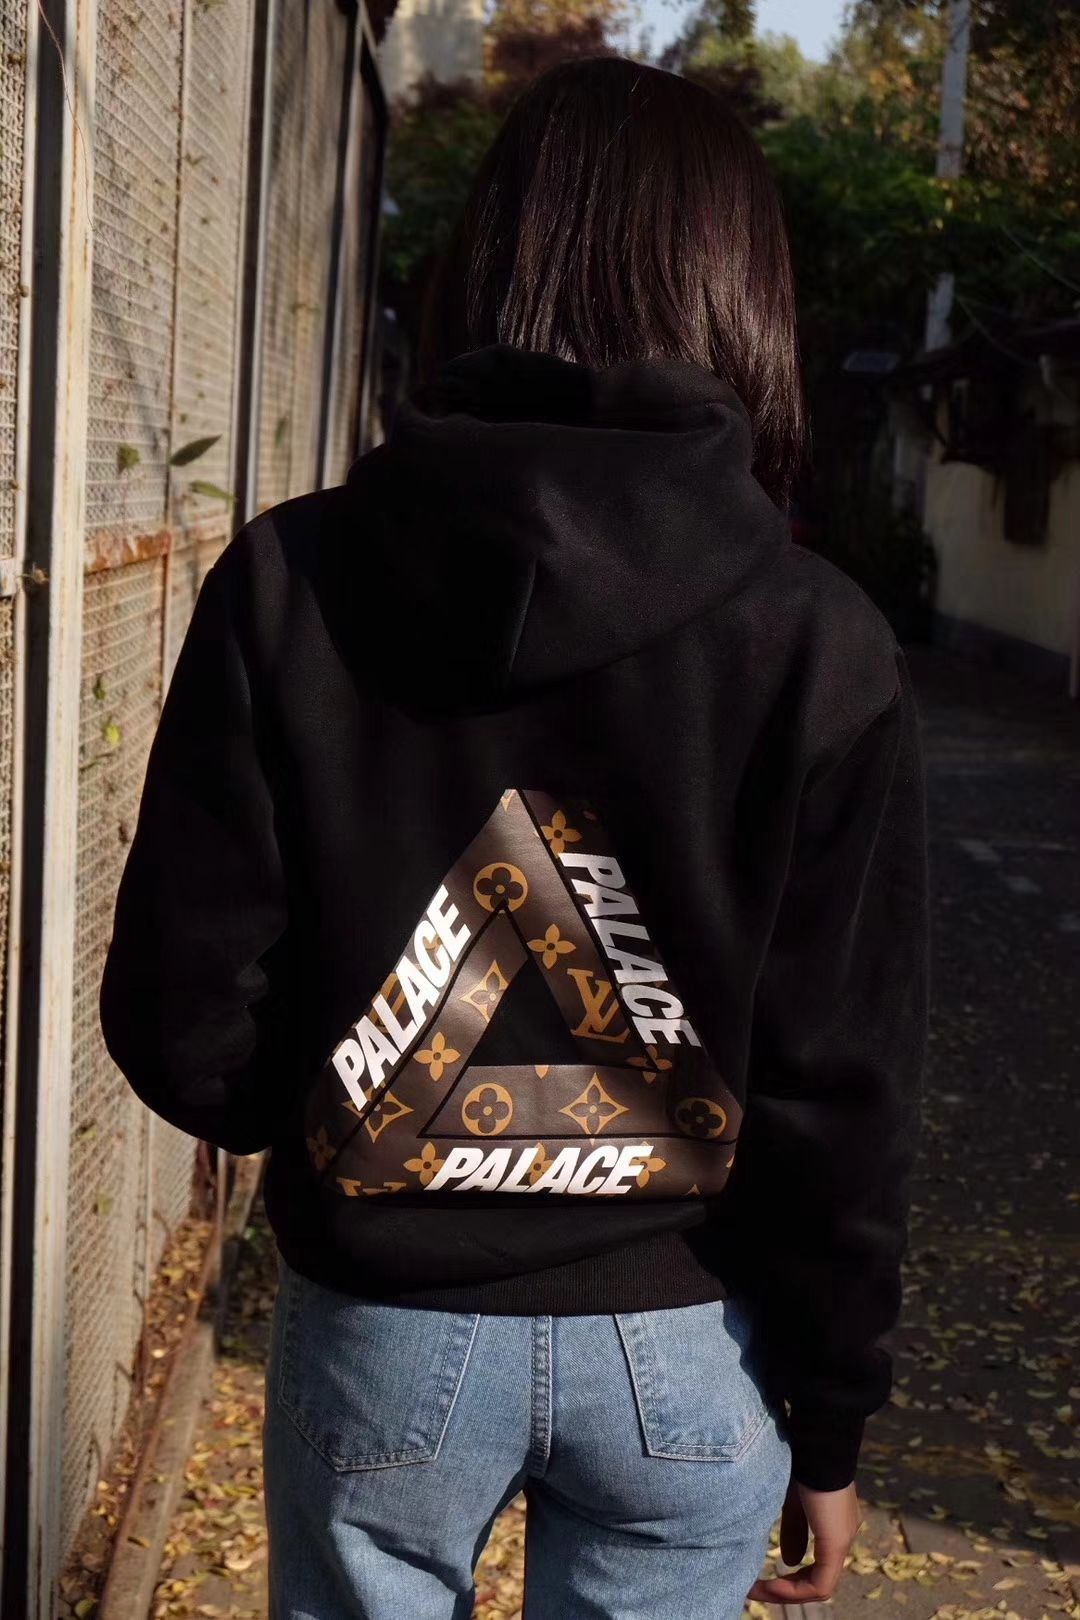 3e135a98c1f1 Incredible duo. Palace LV Pyramid Hoodie. Now in store!  palace  lv   streetwear  streetfashion  streetstyle  streetwearvilla